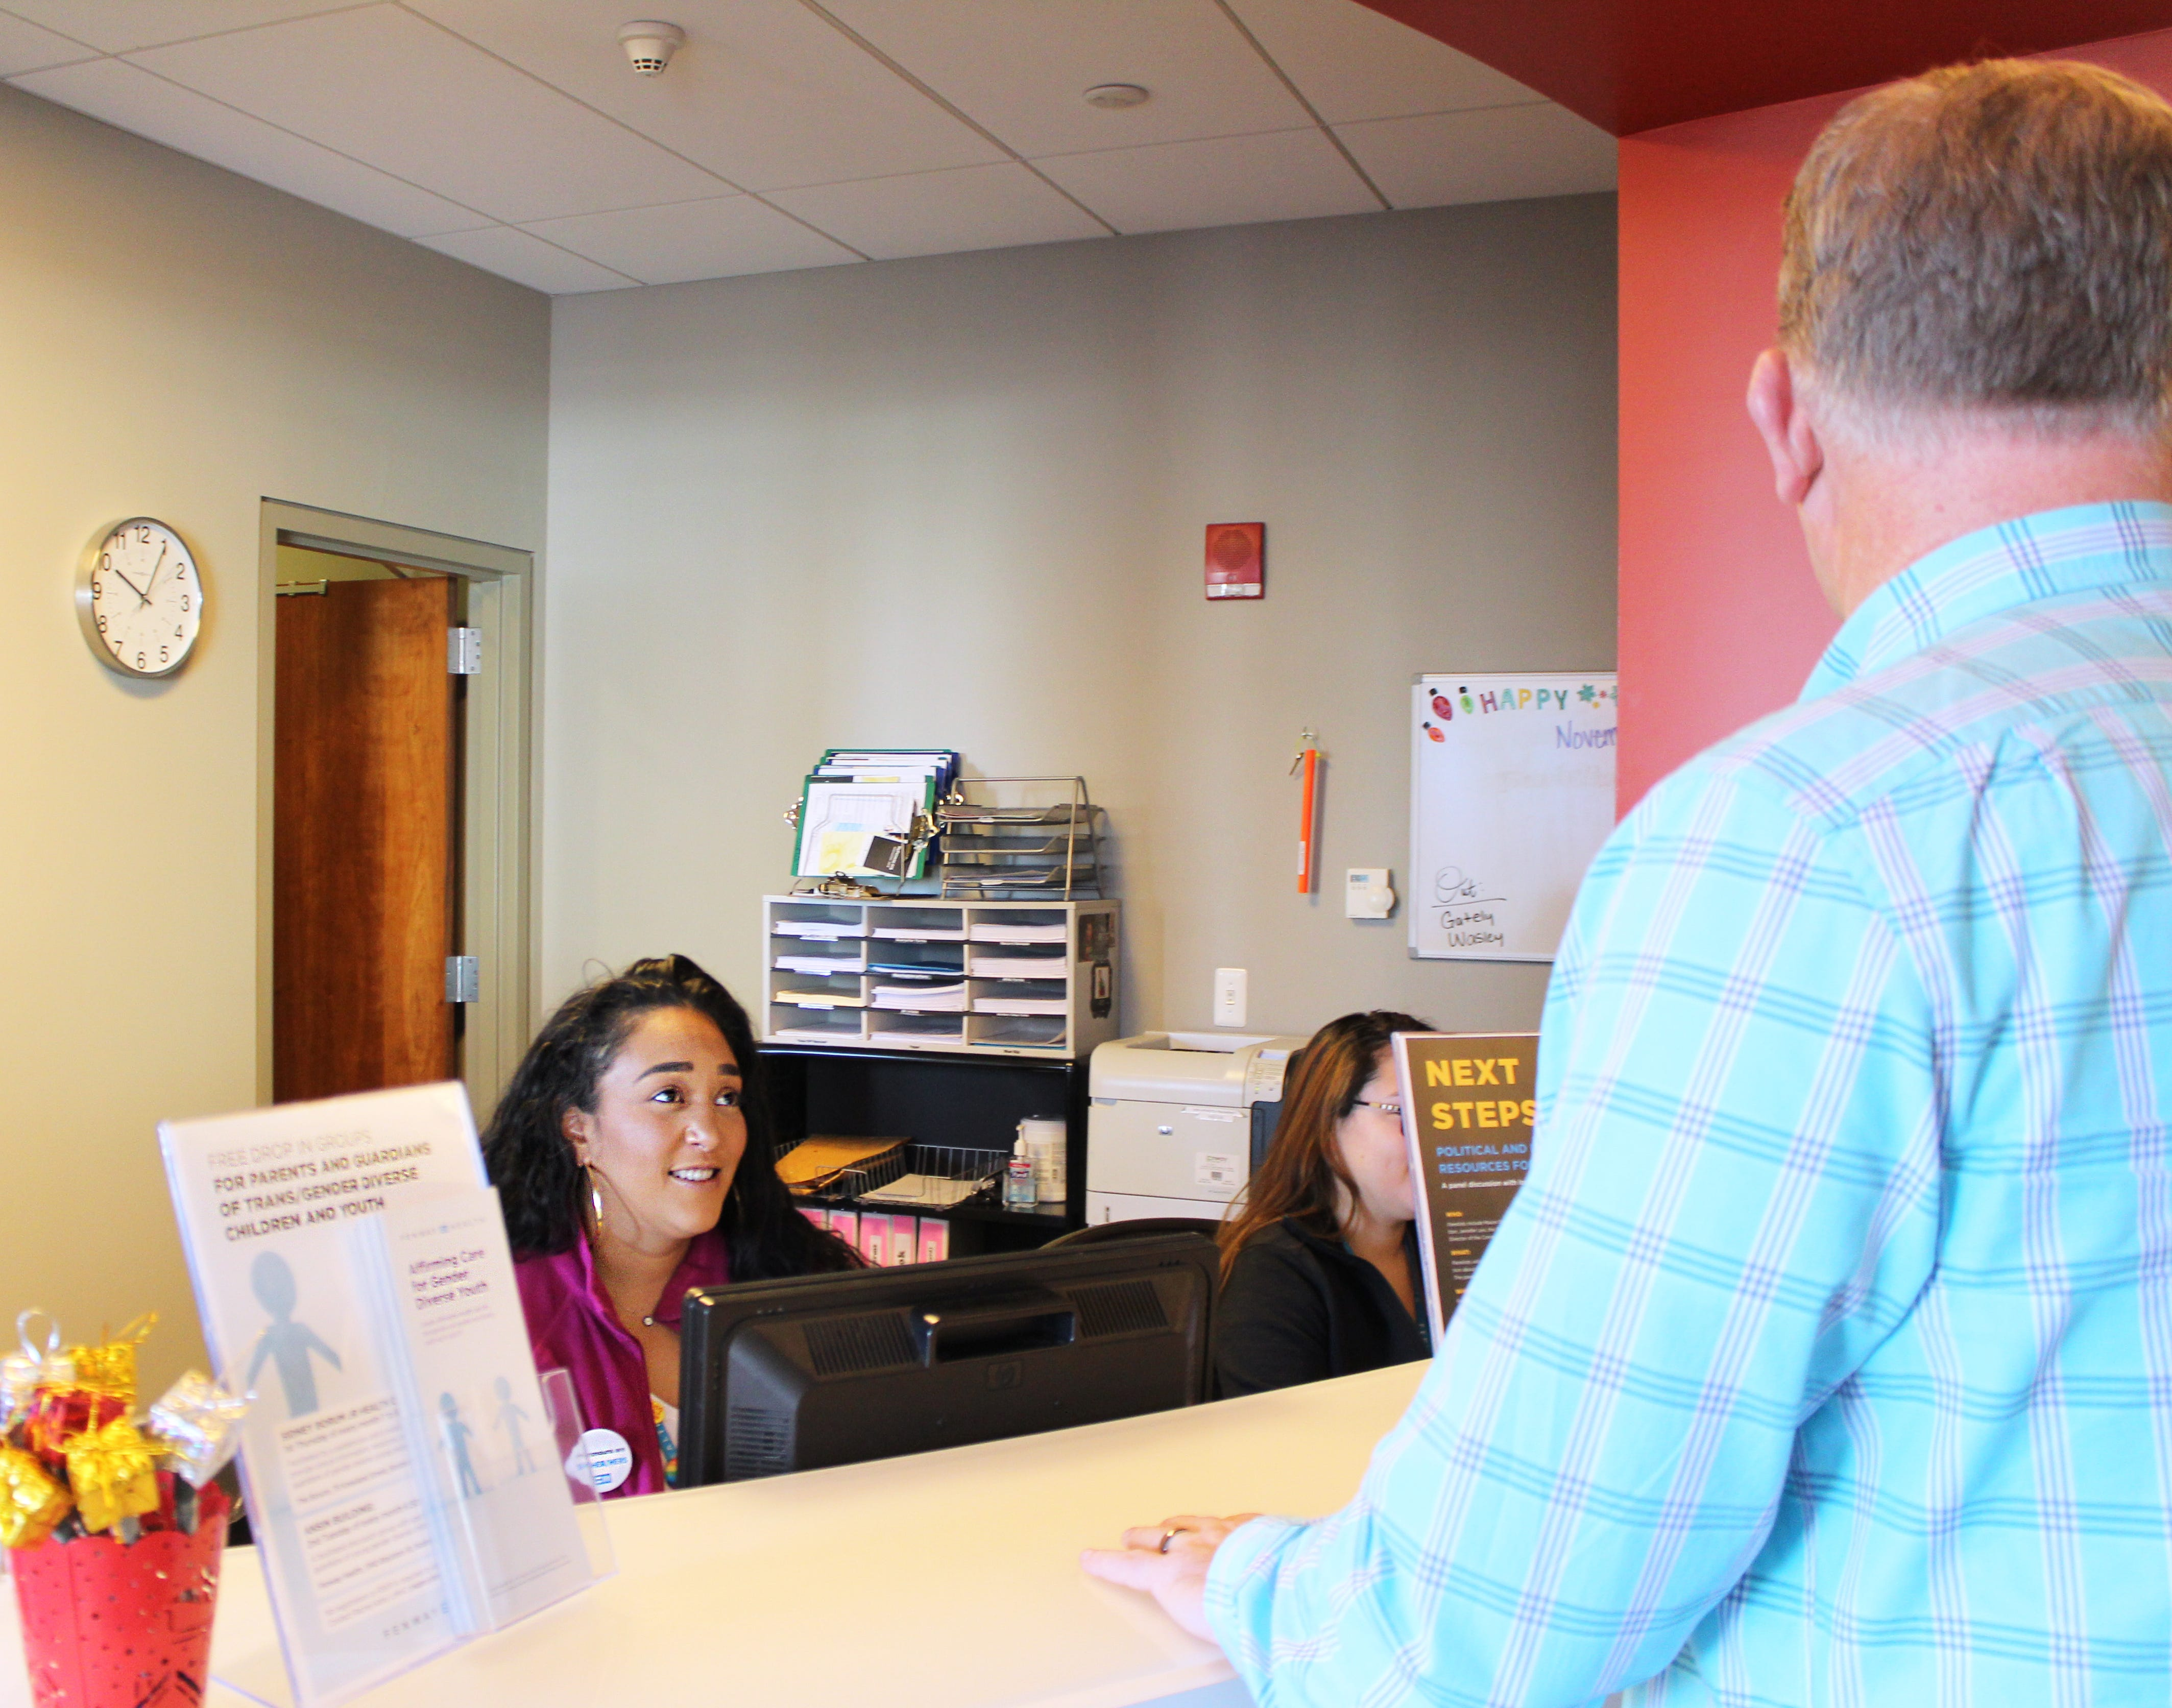 Karen Ruiz checks in a patient at Fenway Health, a Boston community health center that specializes in caring for the lesbian, gay, bisexual and transgender community.